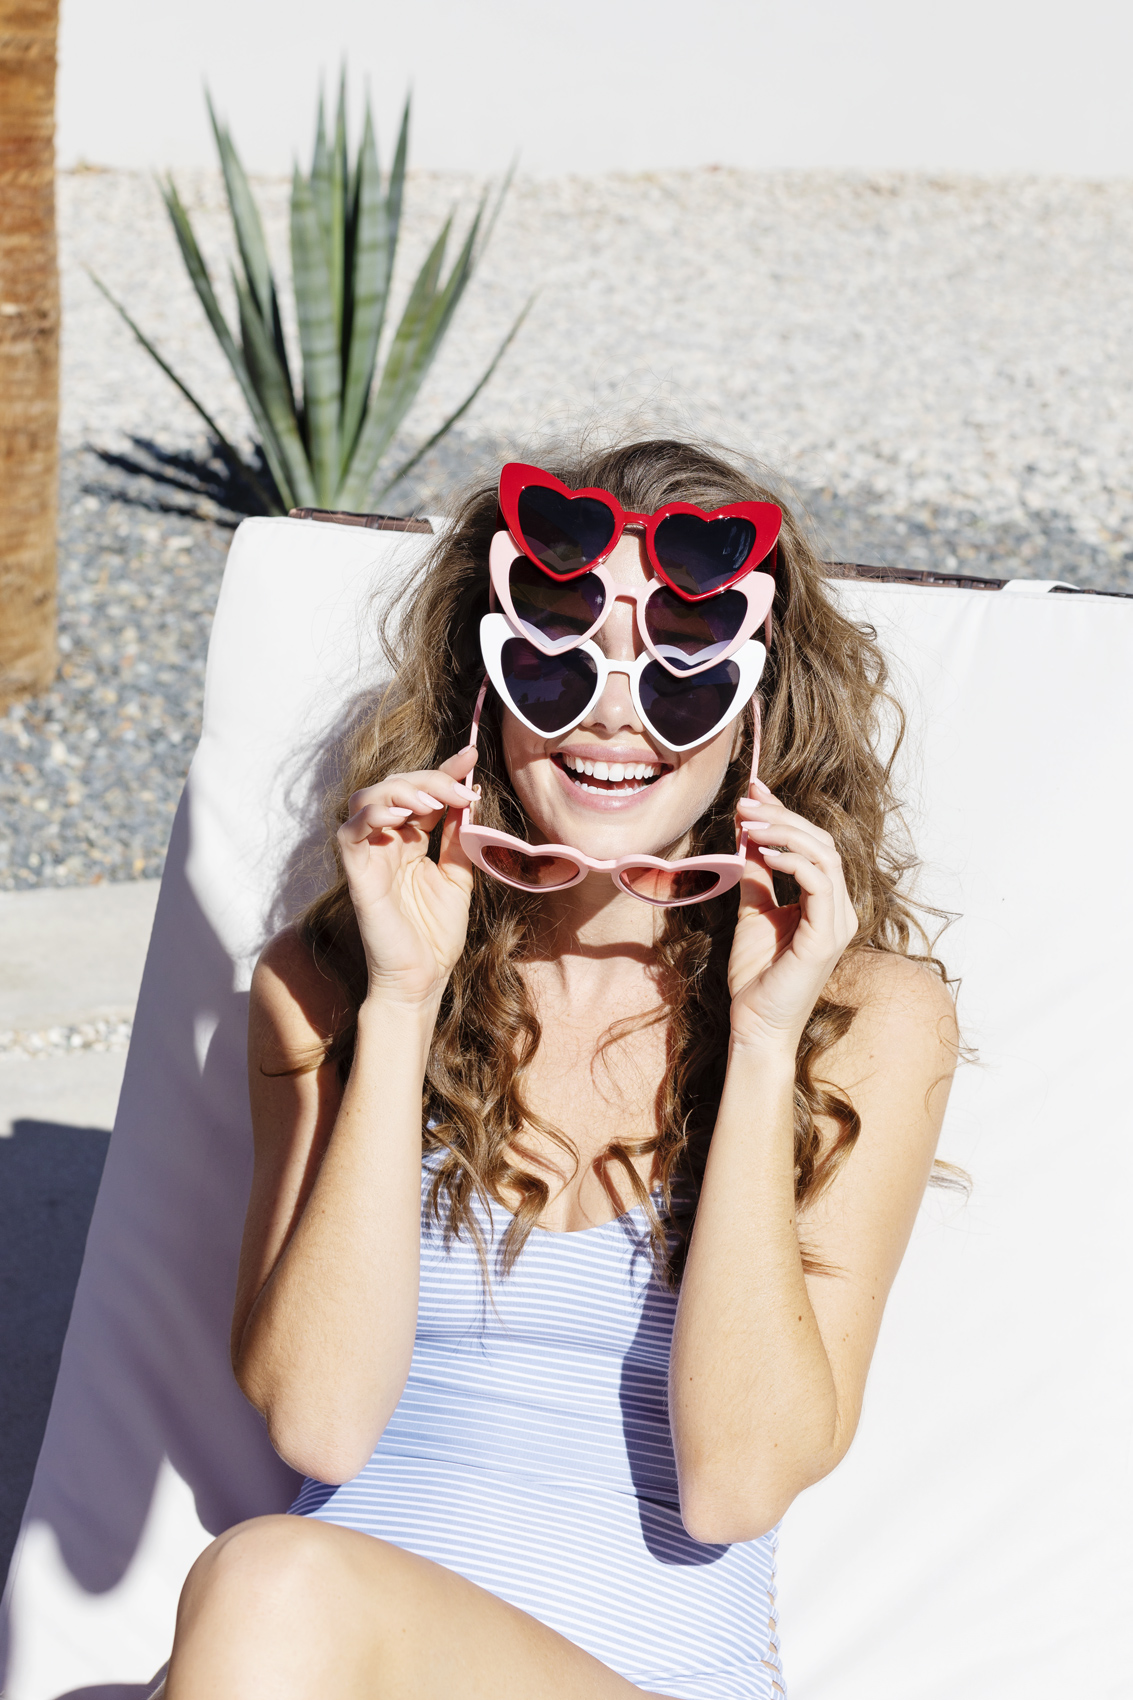 Girl wearing heart sunglasses outside in the sun